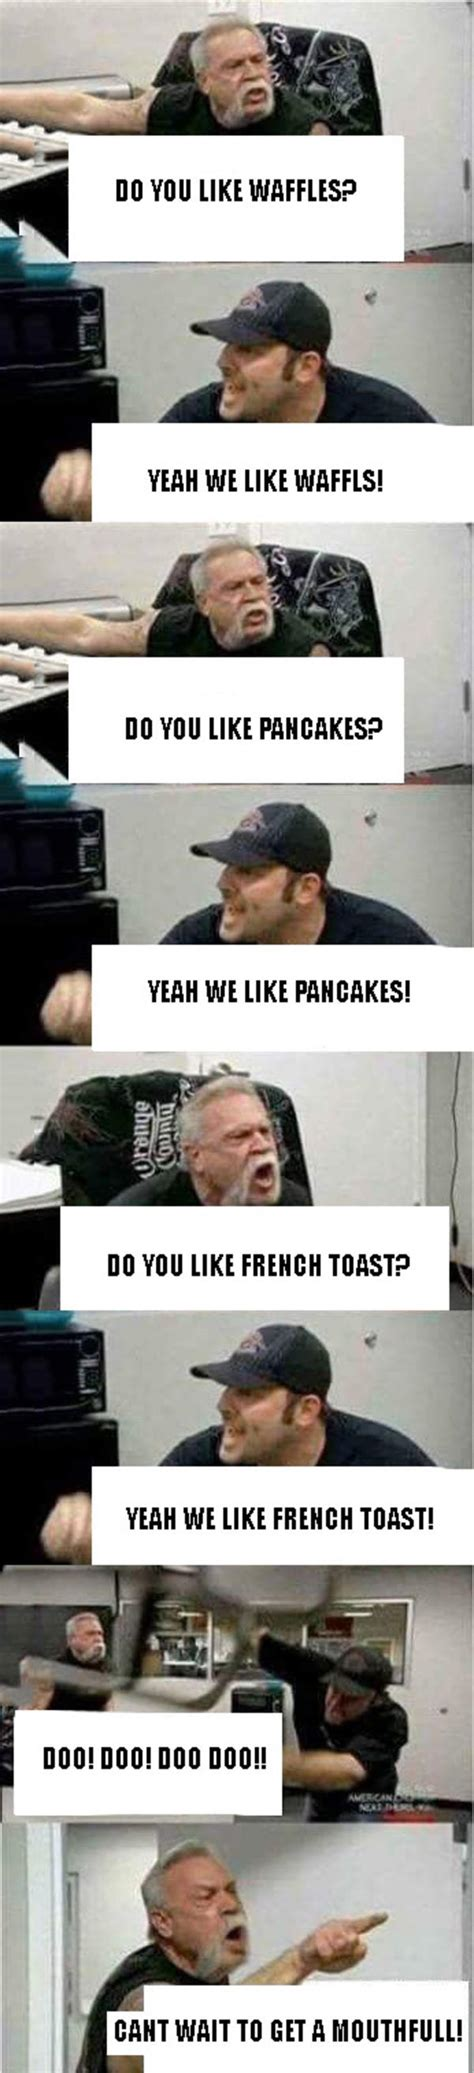 American Chopper Meme Template Agressively Sings About Waffles American Chopper